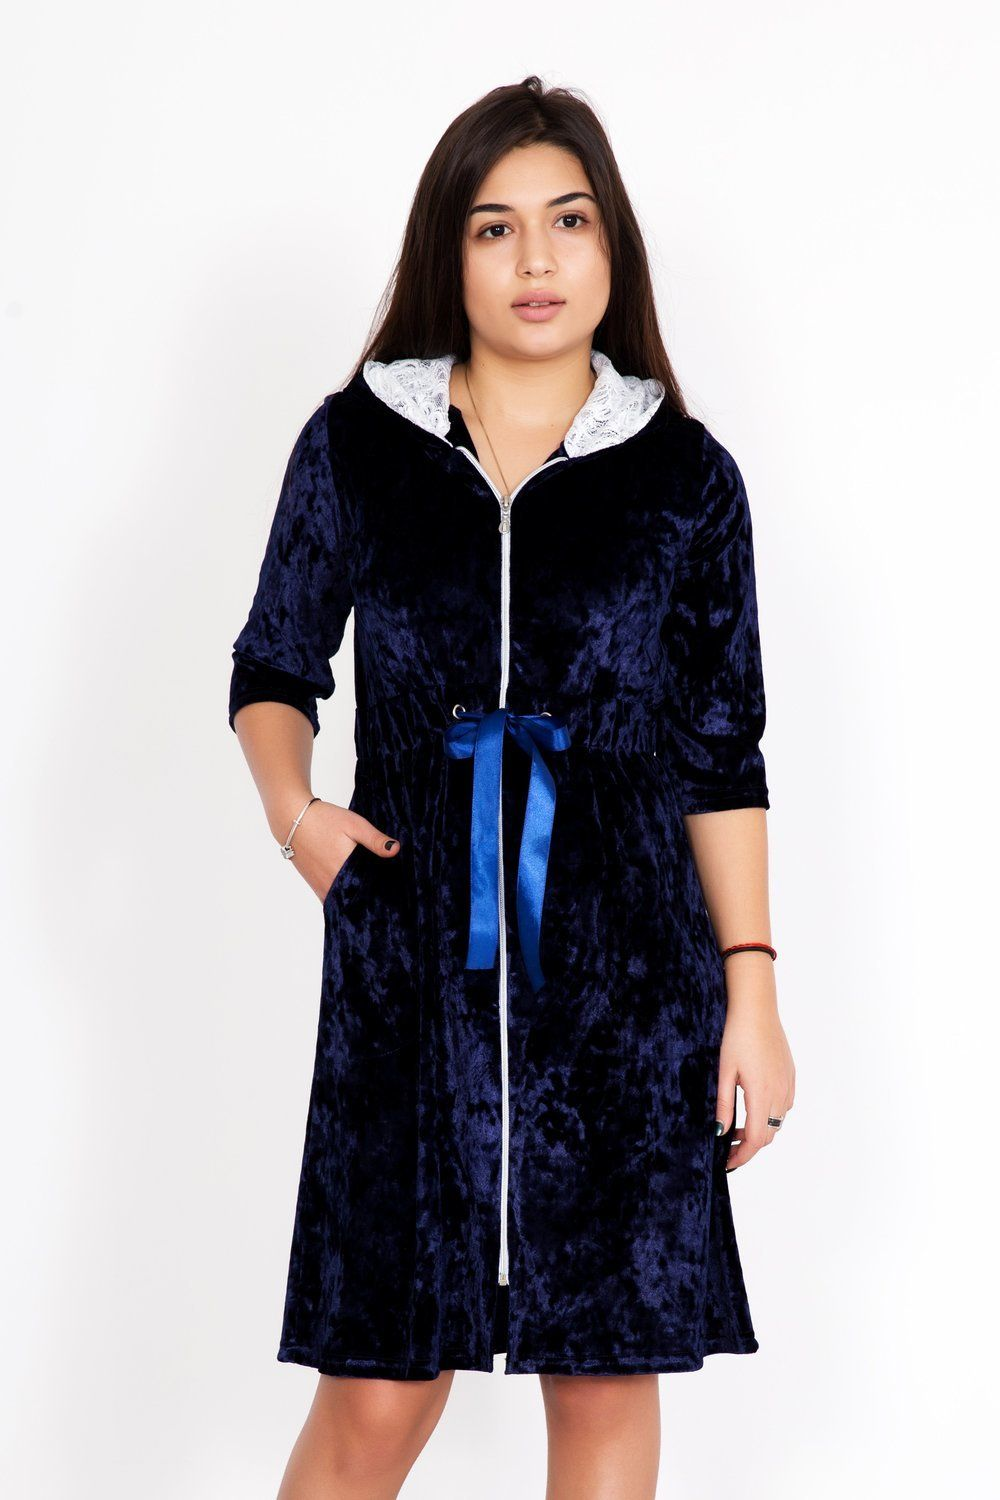 Lika Dress / Bathrobe Belita Art. 5047